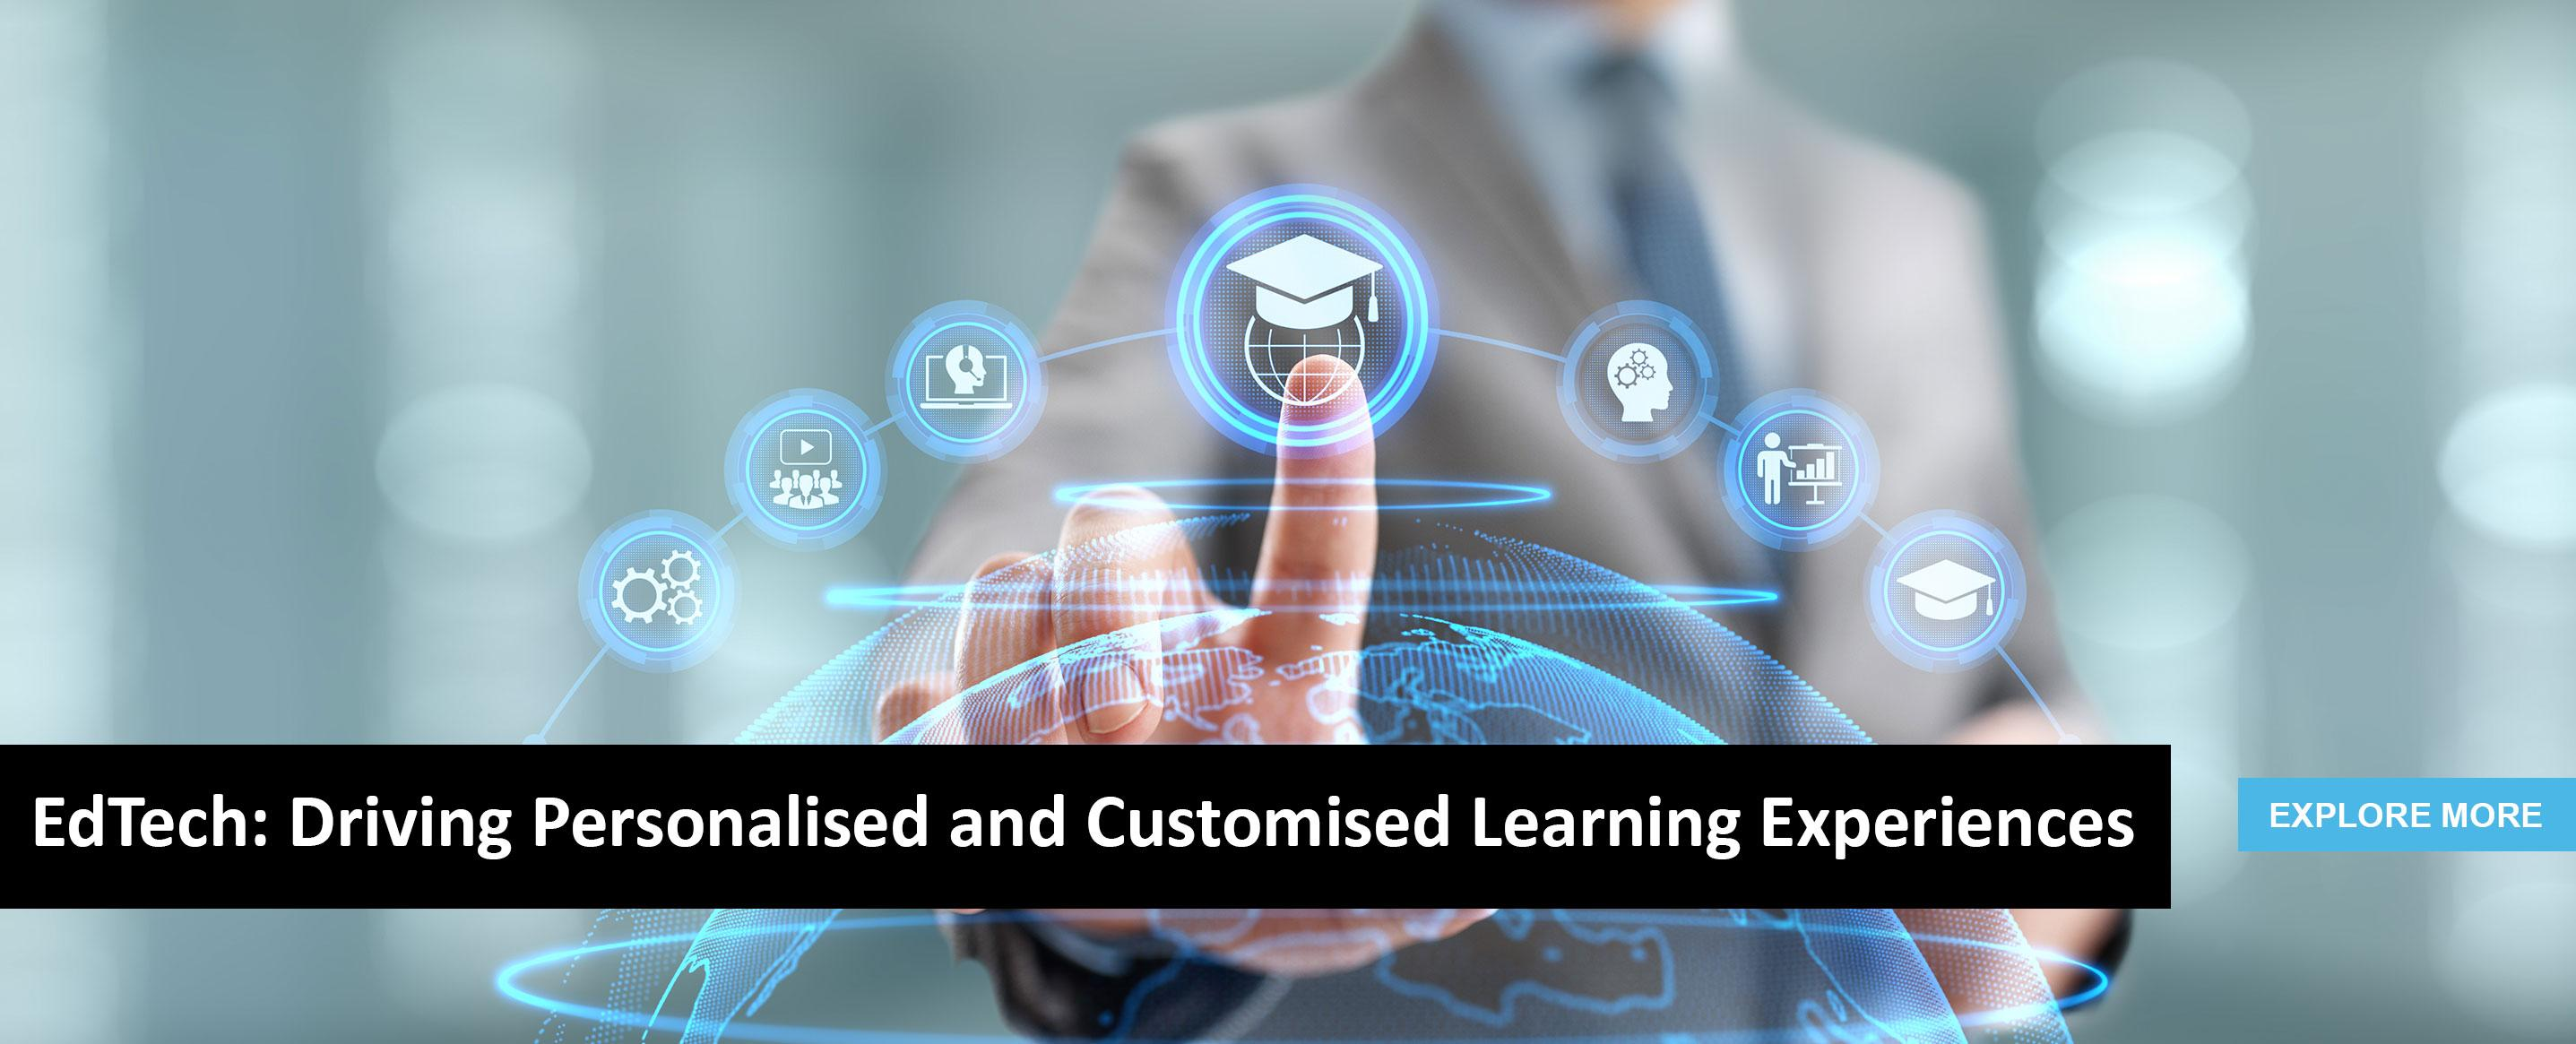 EdTech : Driving Personalised and Customised Learning Experiences